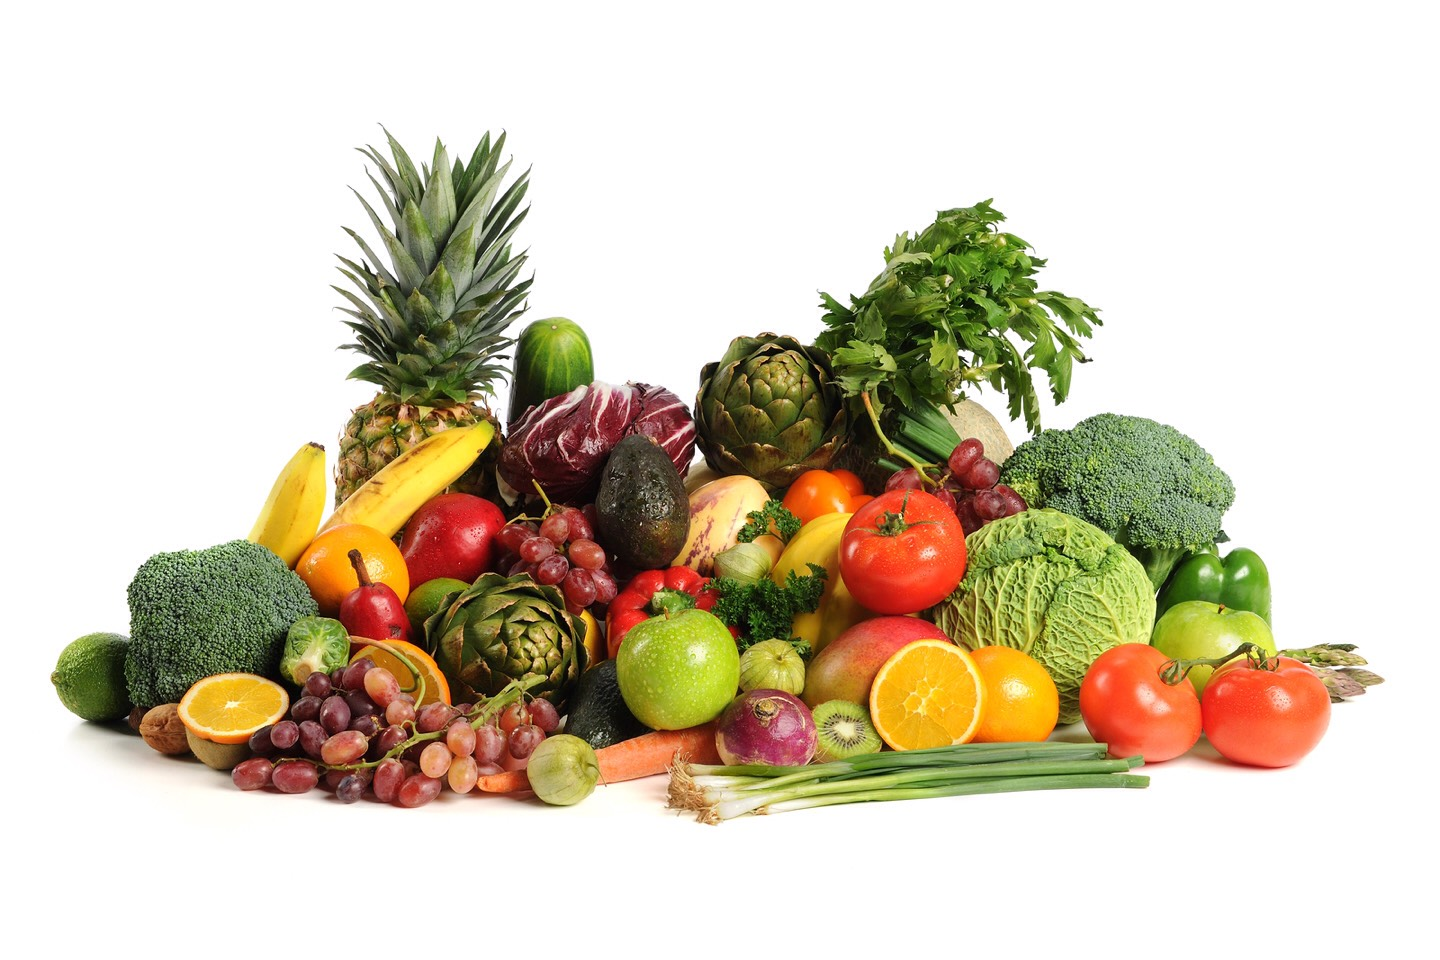 Eat more fruits and vegetables . These are very good for you